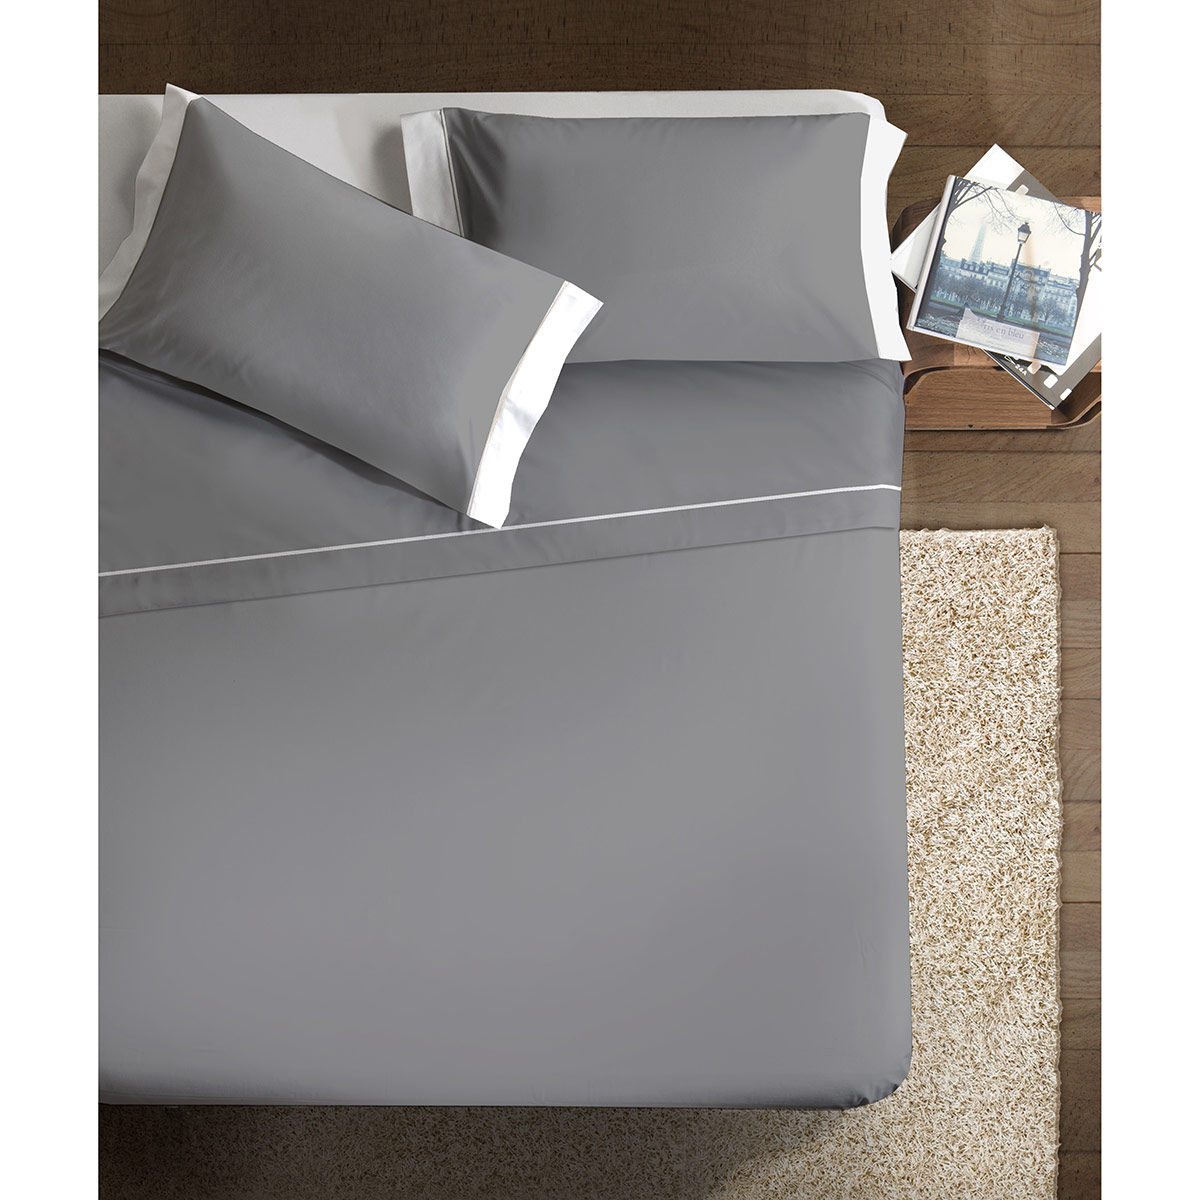 http://www.carillobiancheria.it/images/paps/20141231105324-Completo_letto_double_colour_grigio_bianco_1.jpg